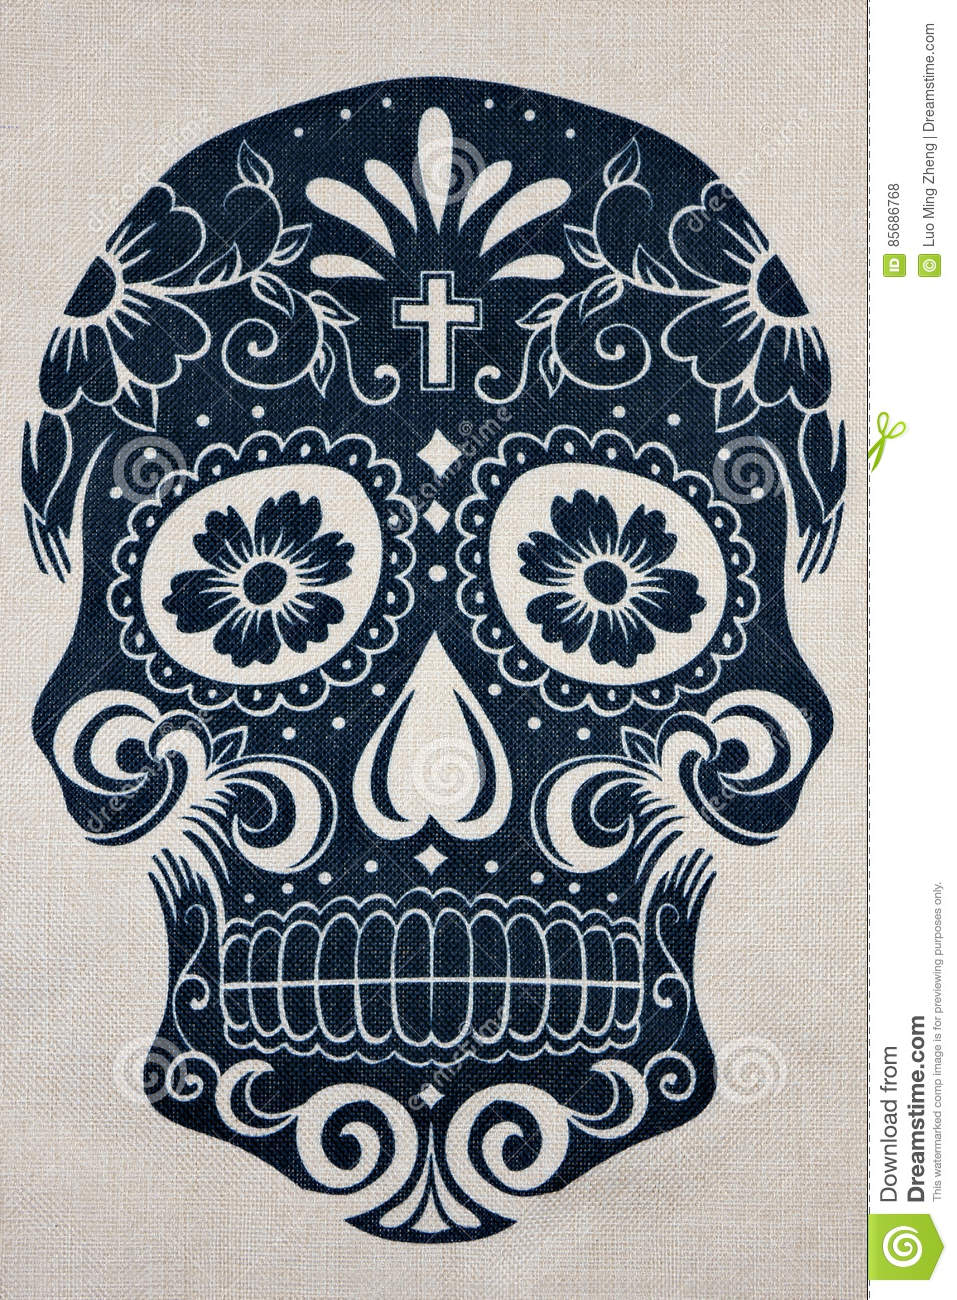 Floral skull fabric